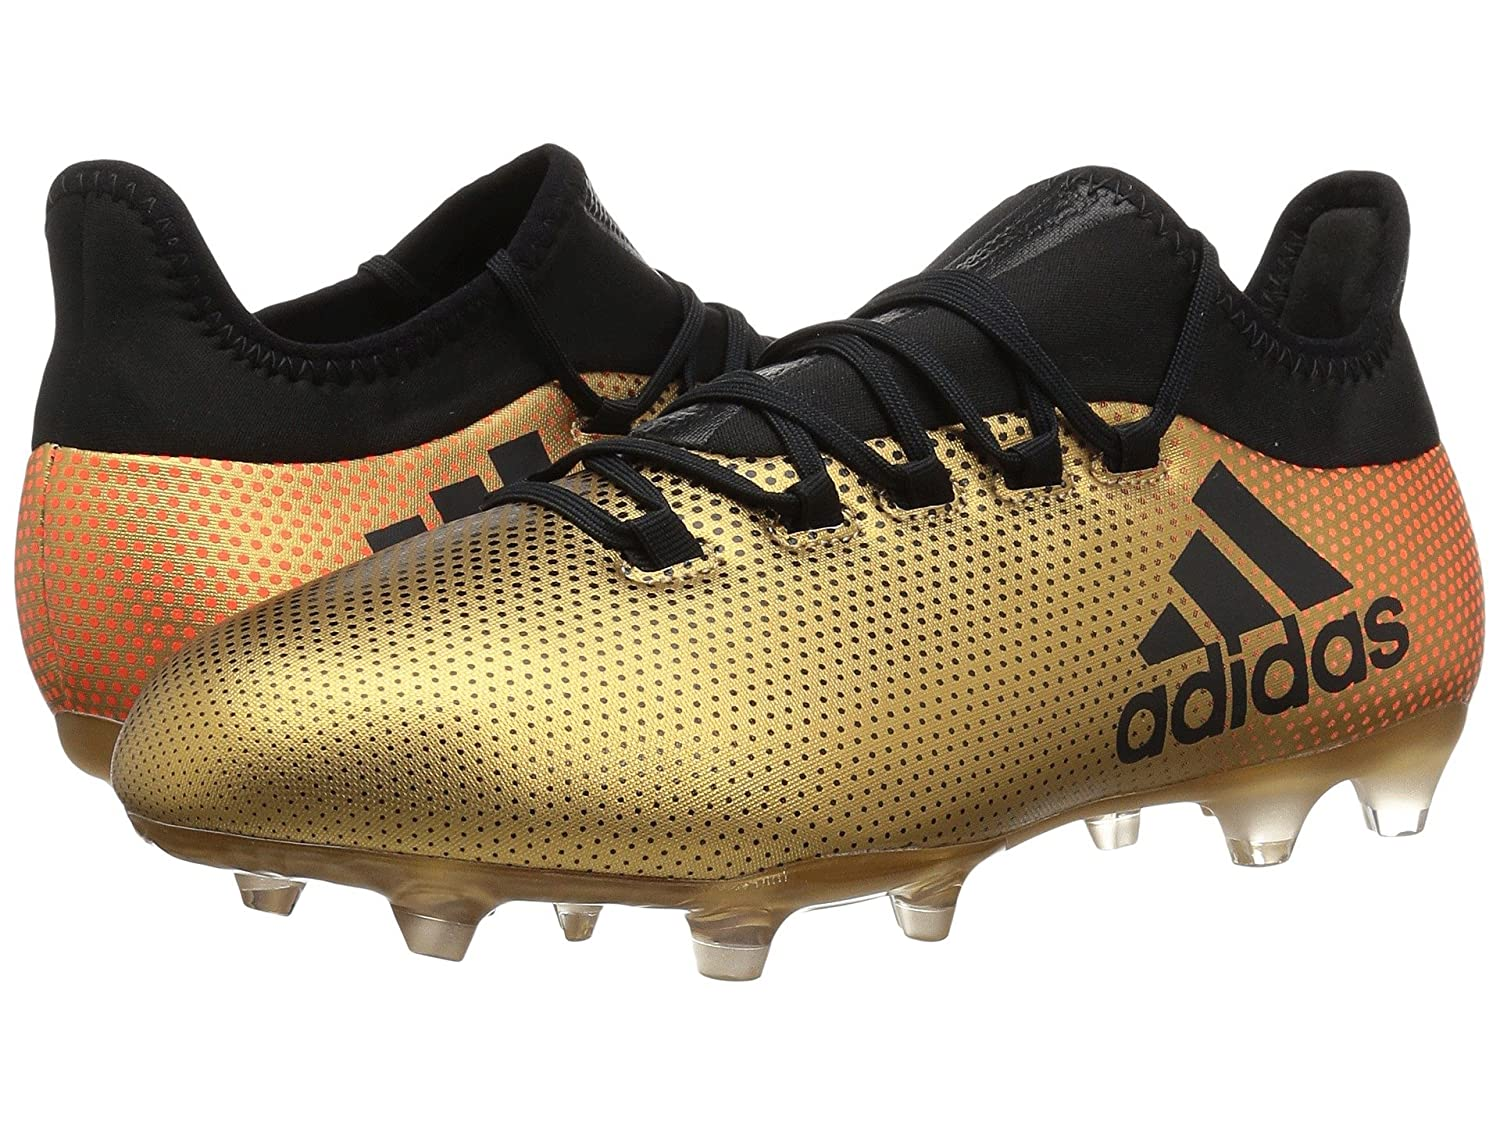 (アディダス) adidas メンズサッカーシューズ靴 X 17.2 FG Tactile Gold/Black/Solar Red 11 (29cm) D Medium B07BQPP7PZ